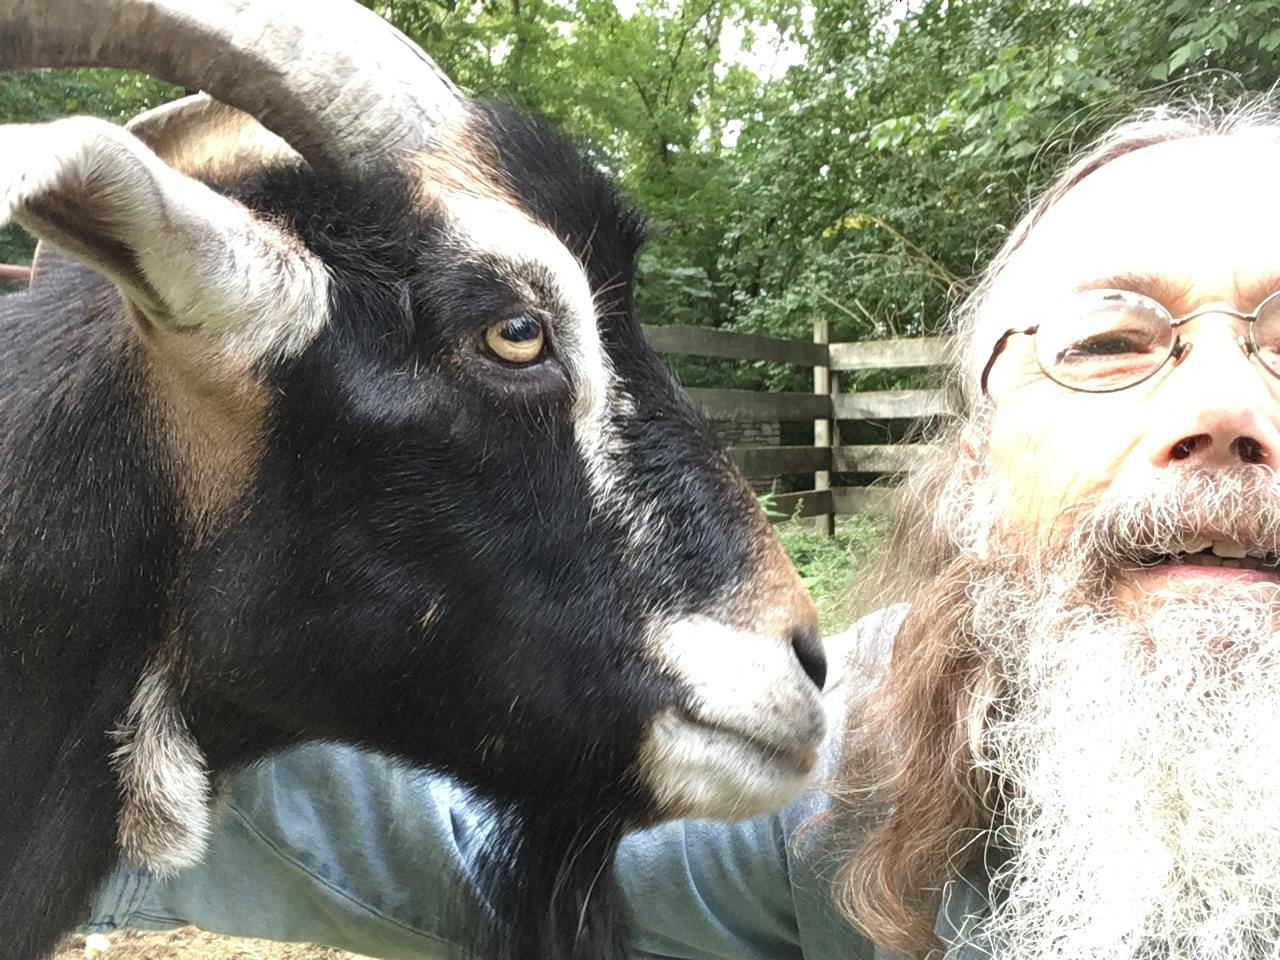 A goat at the Sanctuary.